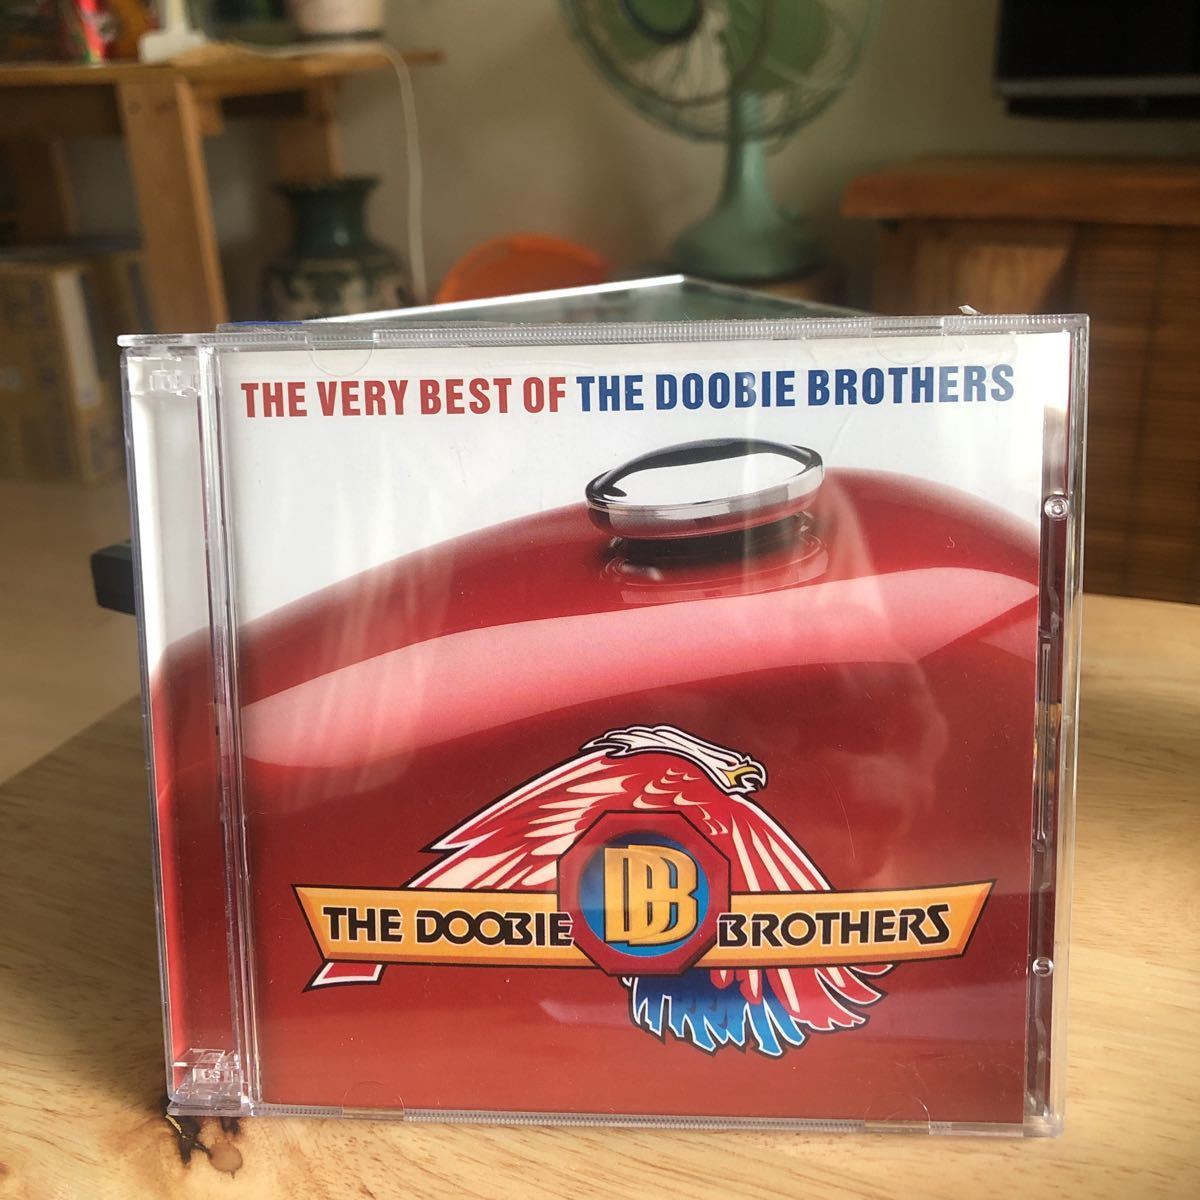 THE DOOBIE BROTHERS 輸入盤2CD 「THE VERY BEST OF~」_画像1